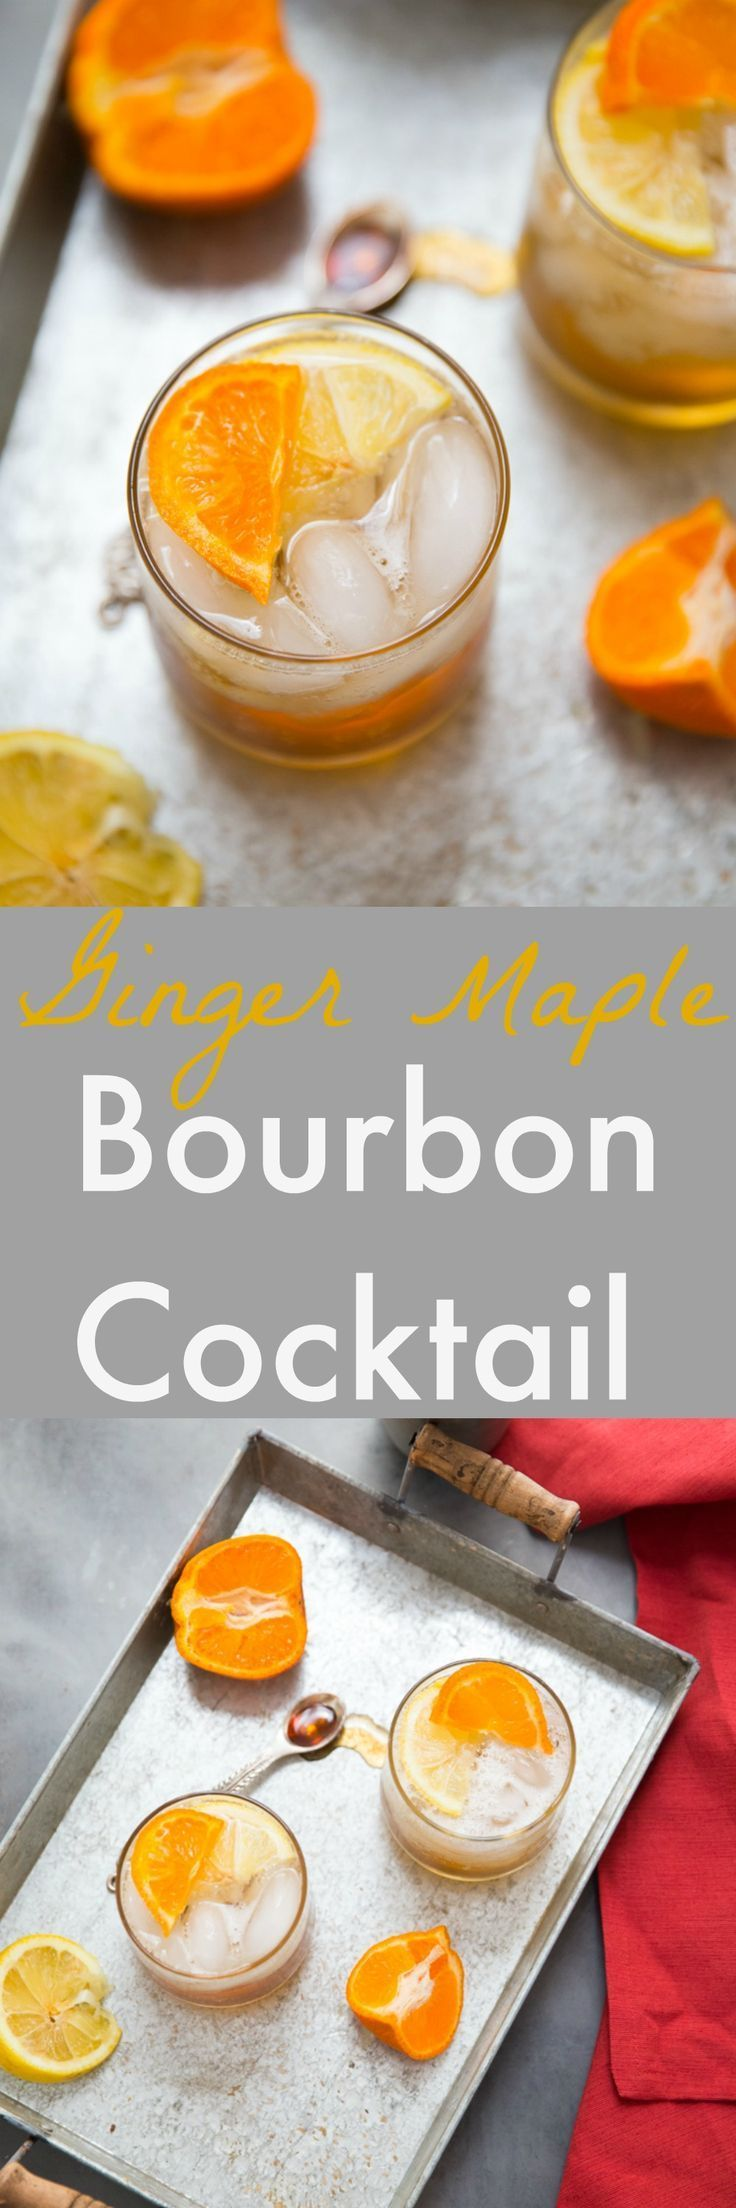 Pure maple syrup brings earthy sweetness to the bourbon cocktail.  Citrus keeps the taste fresh while ginger adds a little bite. #bourbon #cocktail via @Lemonsforlulu